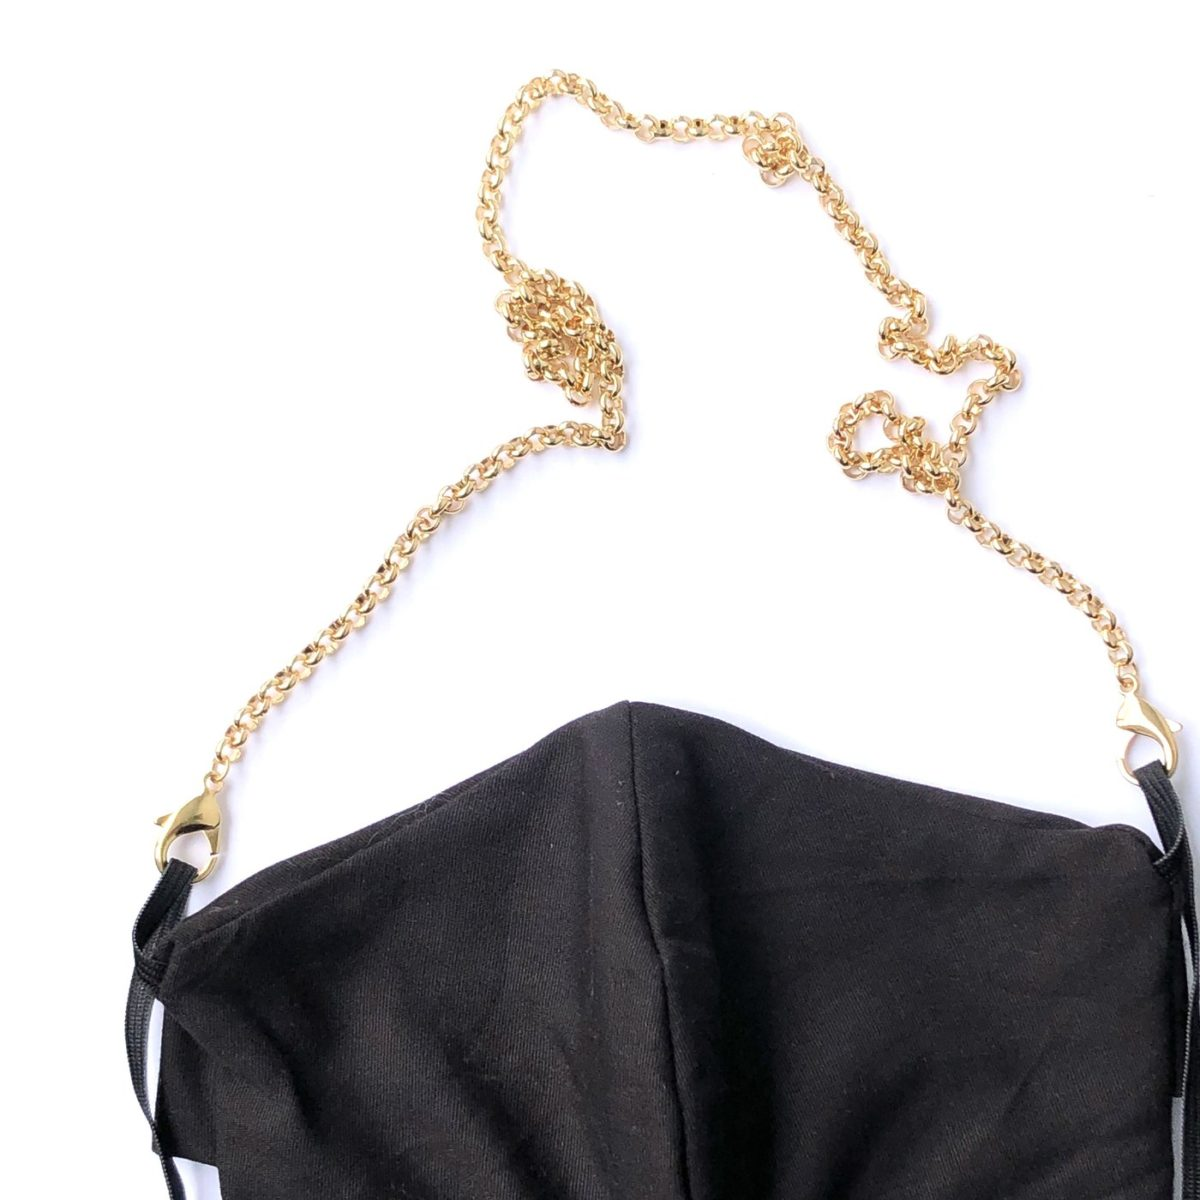 La Mask by Laloop Gold Plated Rolo Chain Necklace Chain for Facemasks